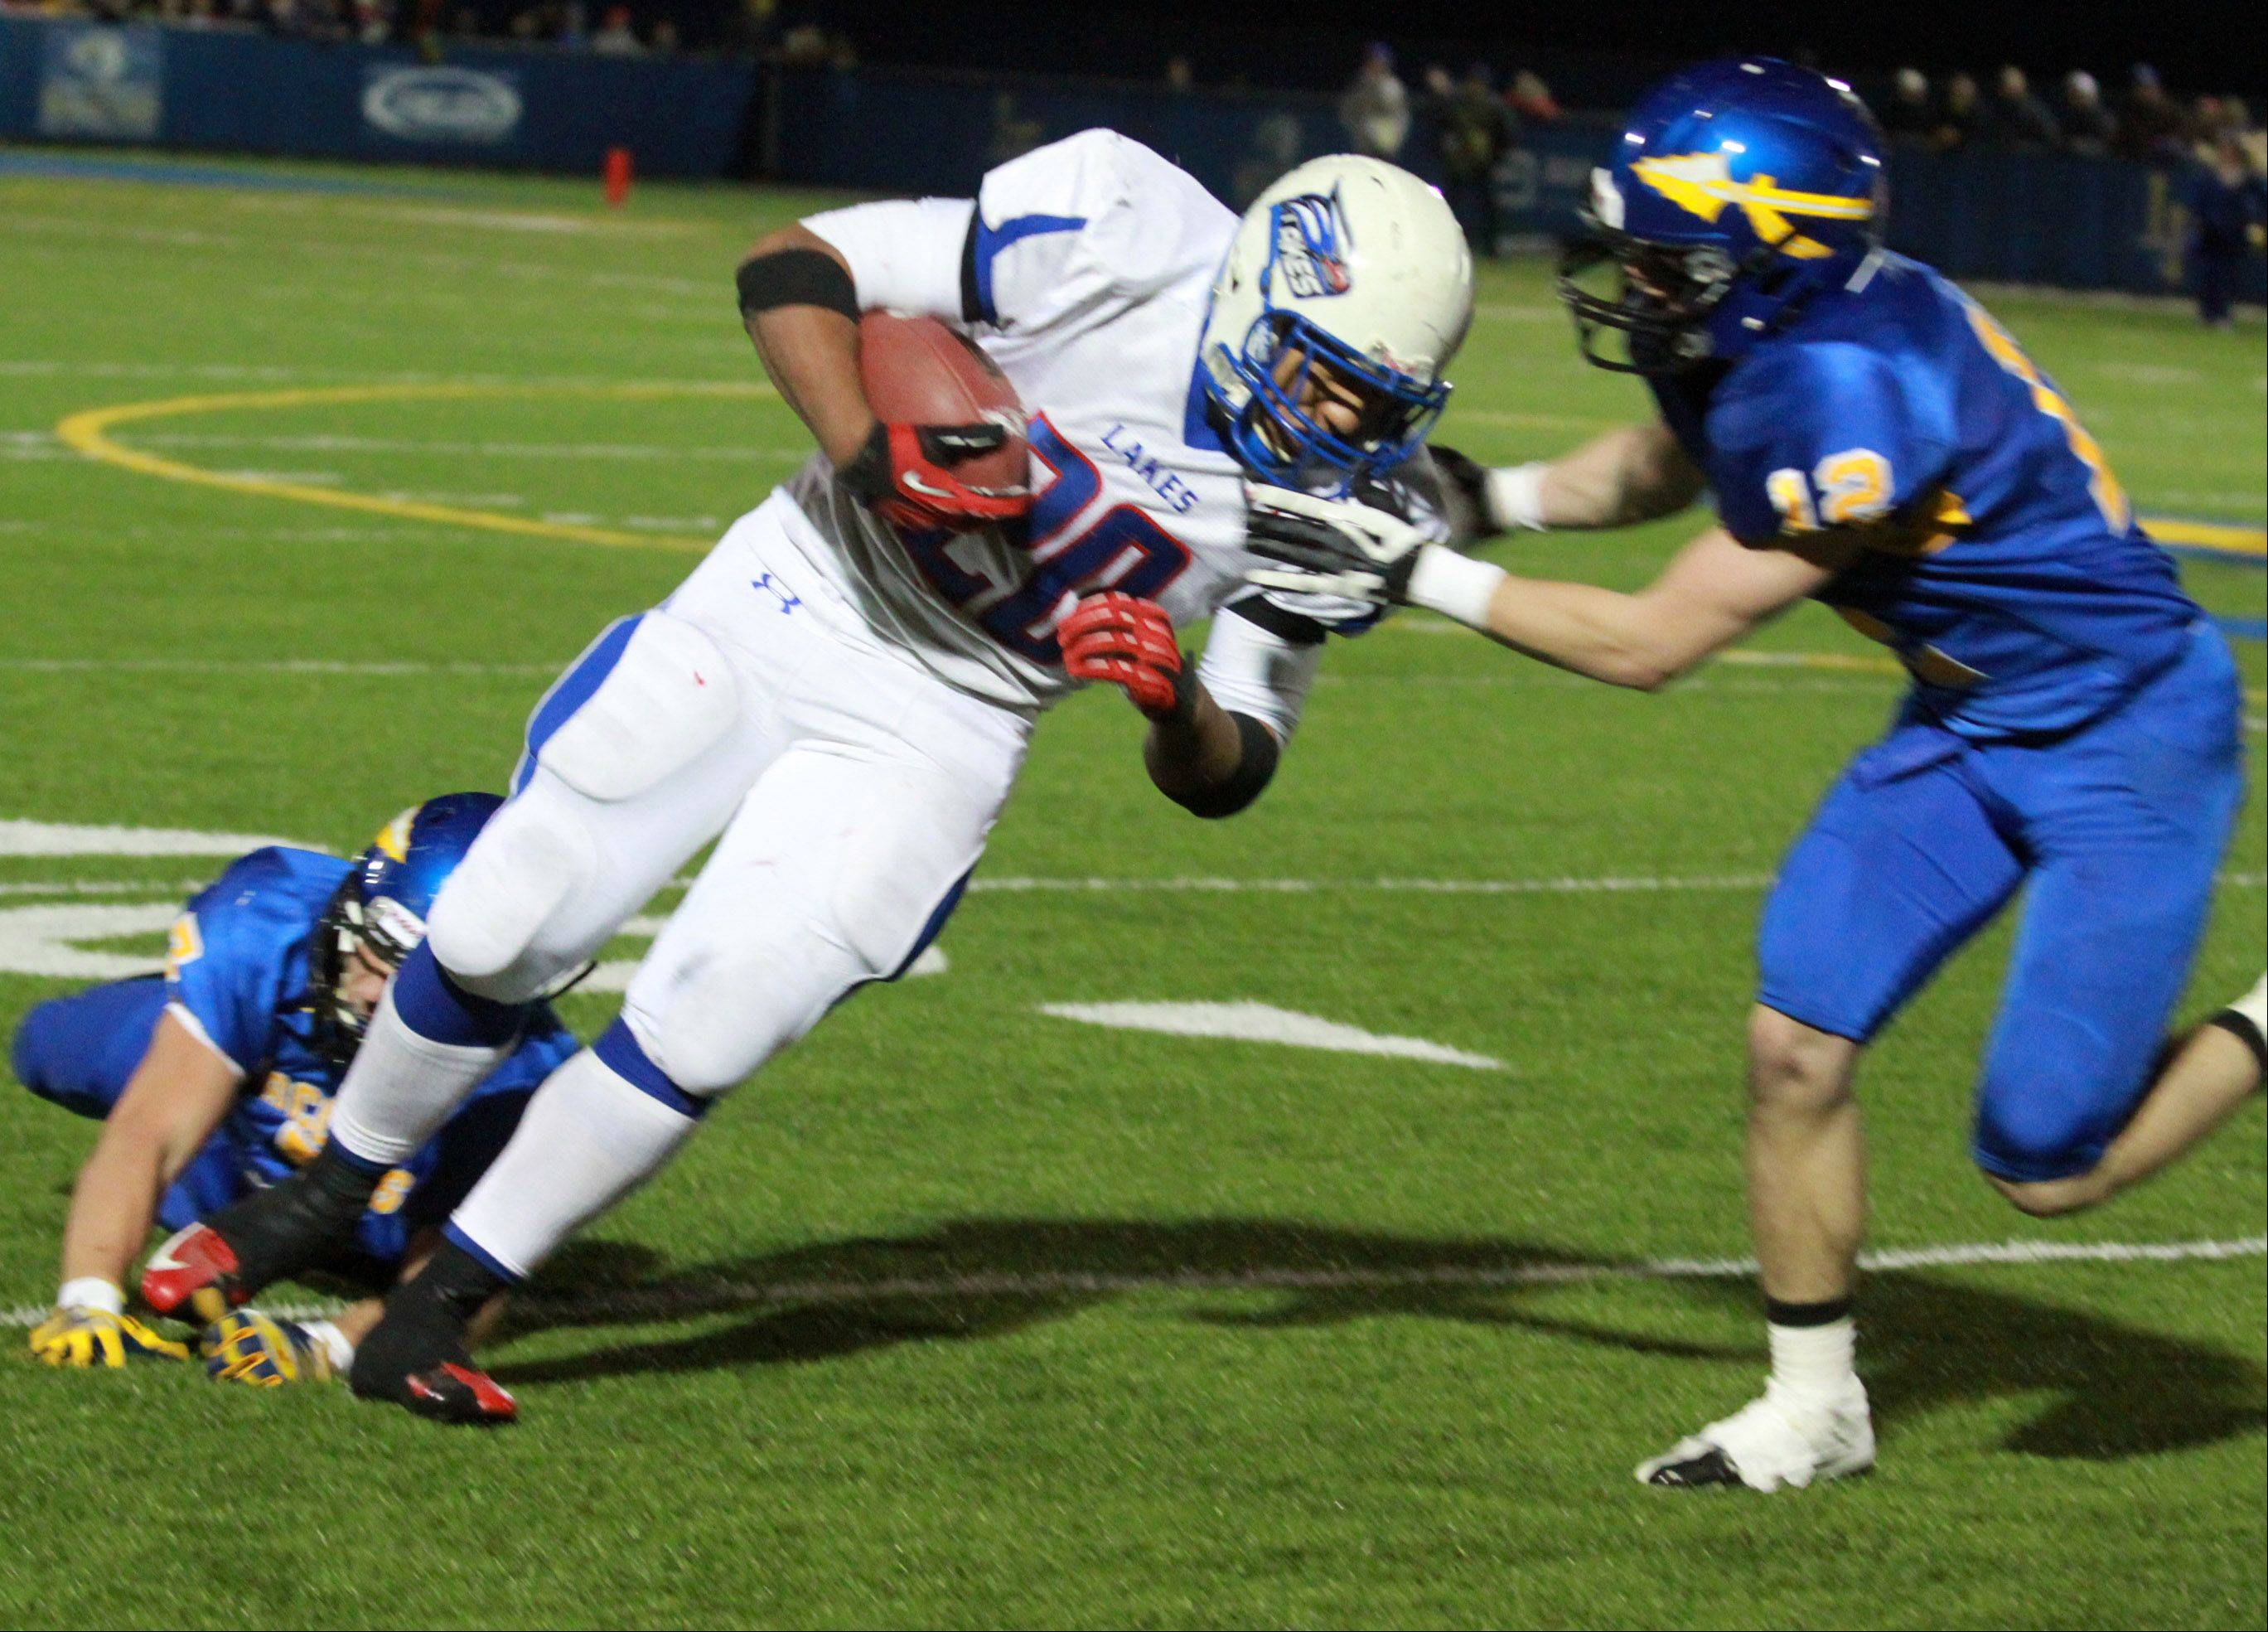 Images: Lake Forest vs. Lakes football